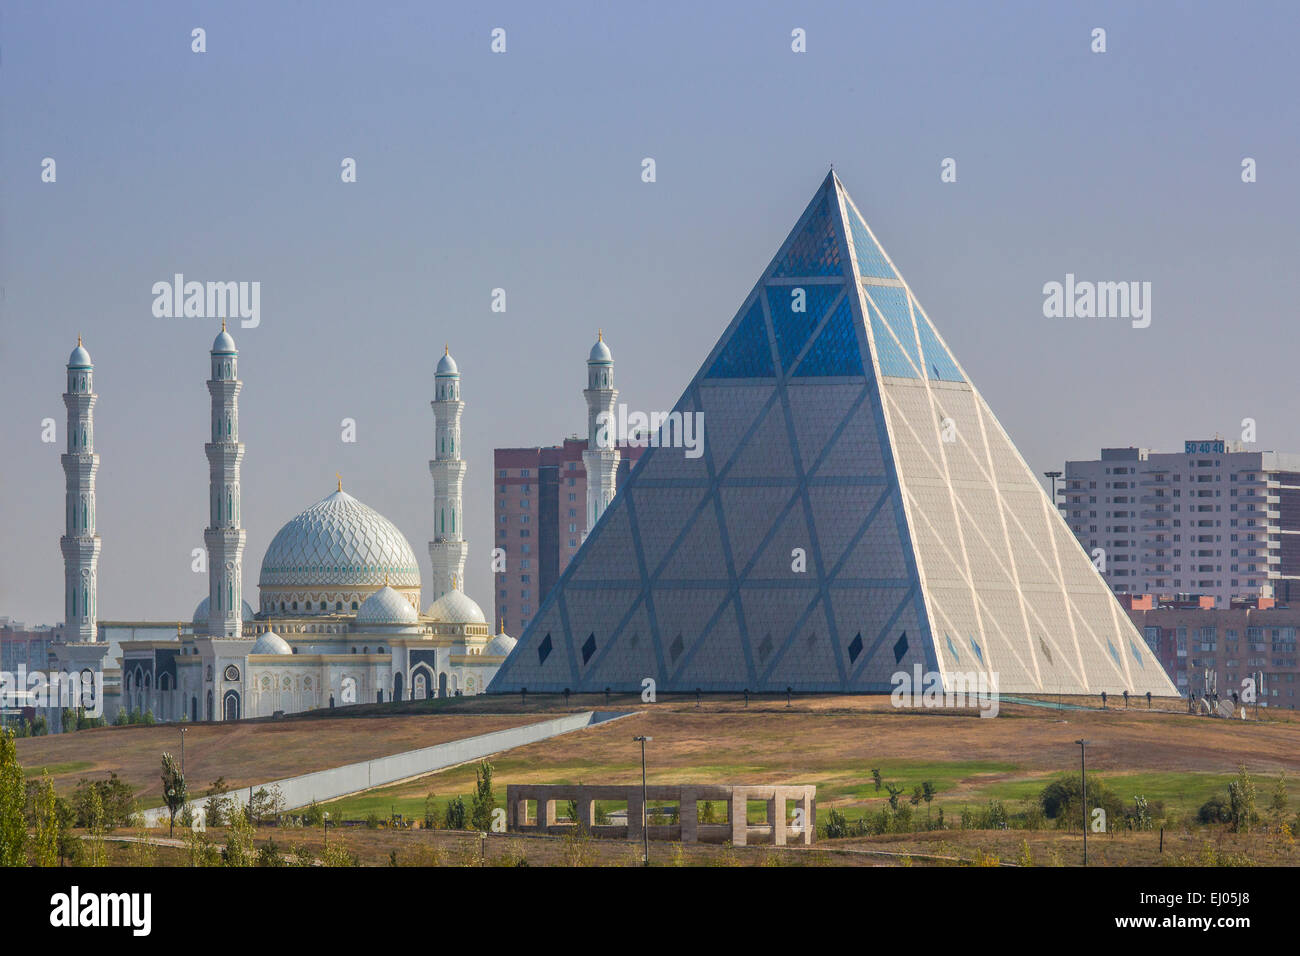 Administrative City, Astana, building, City, Kazakhstan, Central Asia, Mosque, New, Peace and Accord, Summer, architecture, Stock Photo